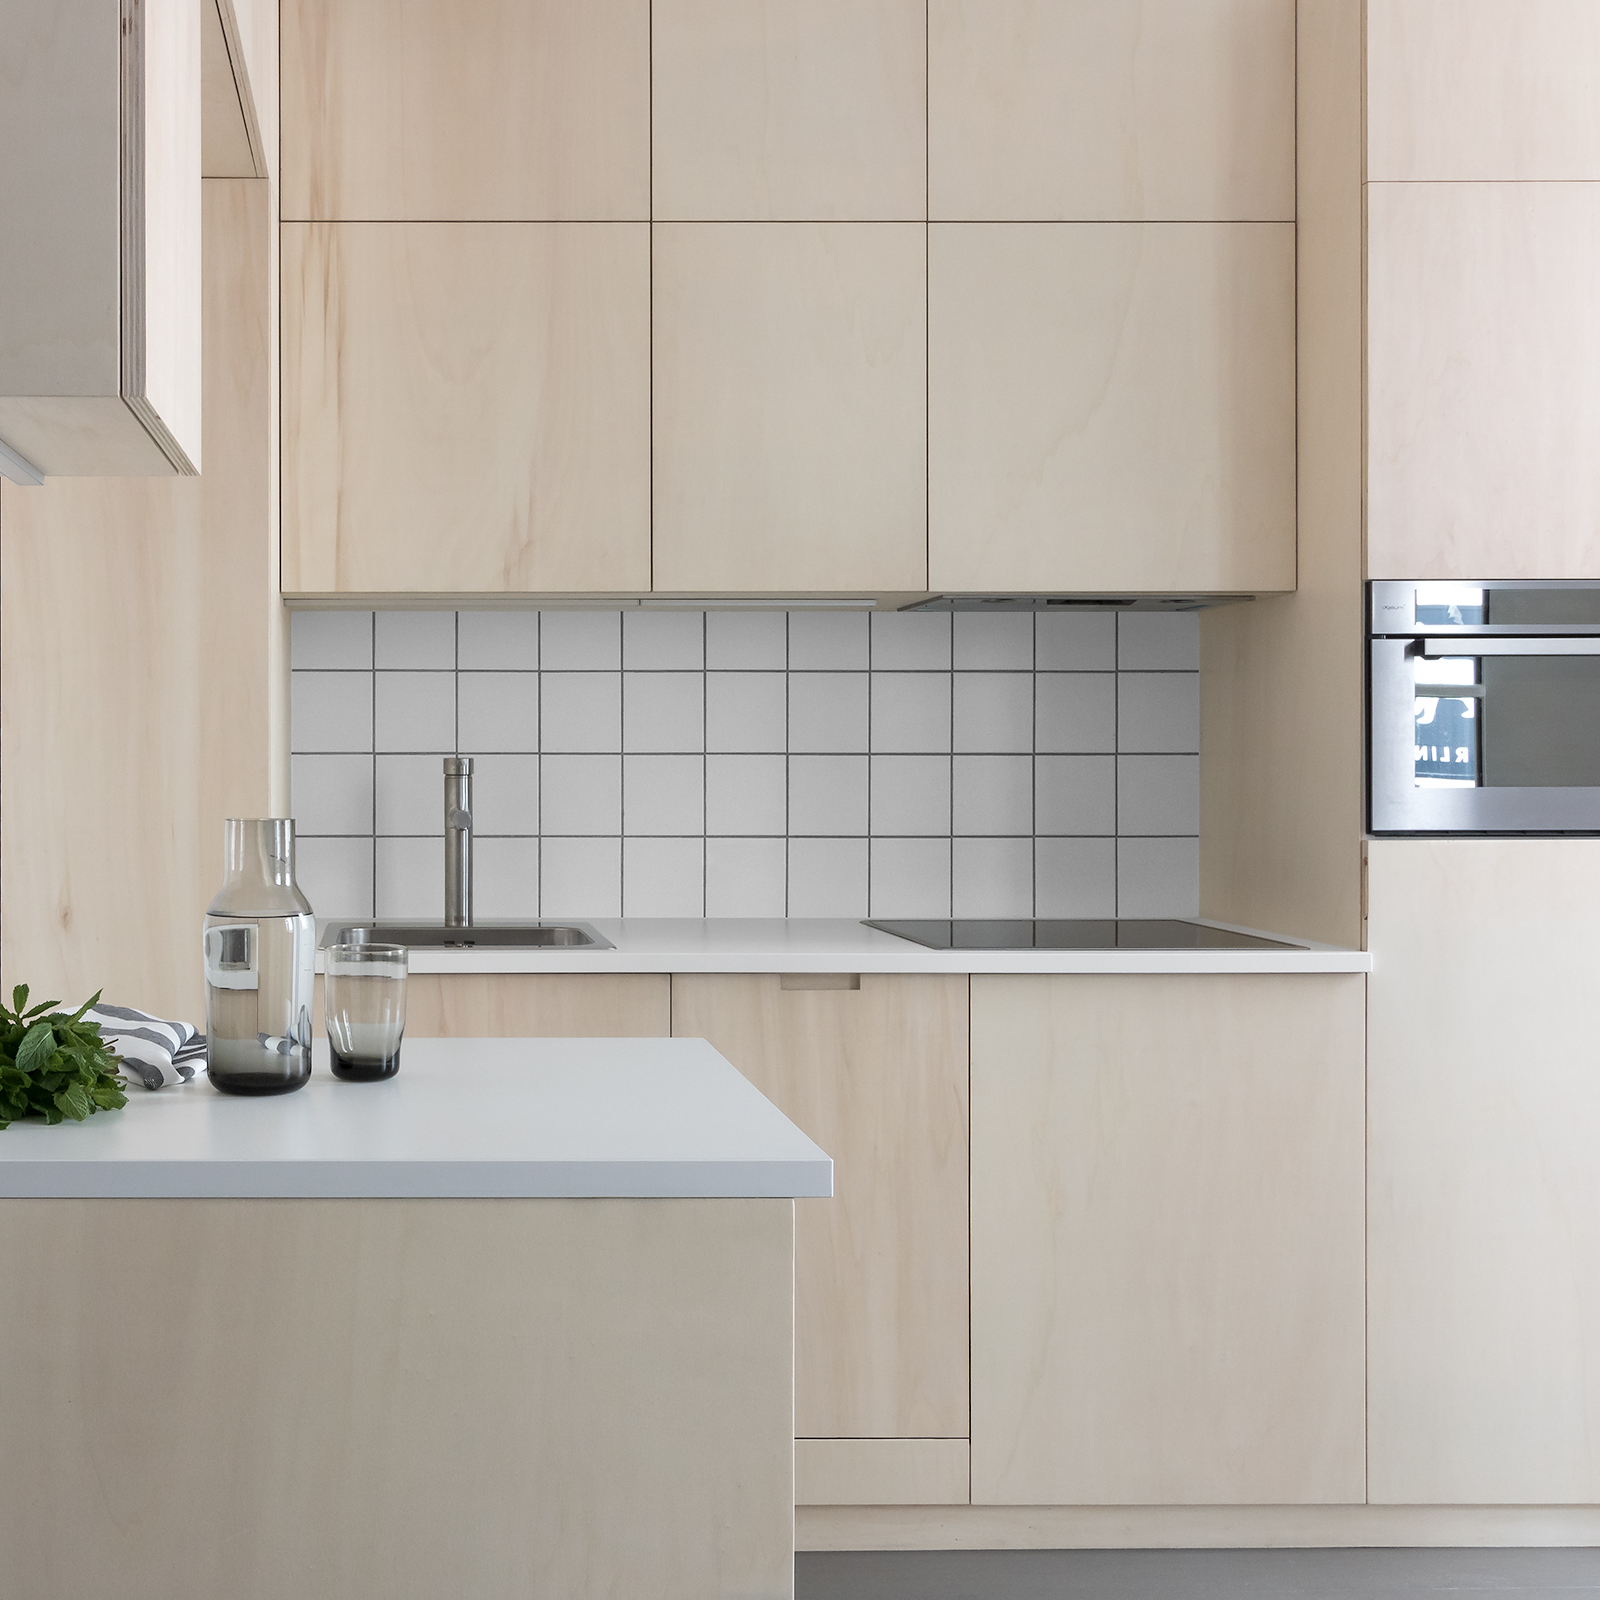 Minimal, modern Japanese style plywood kitchen